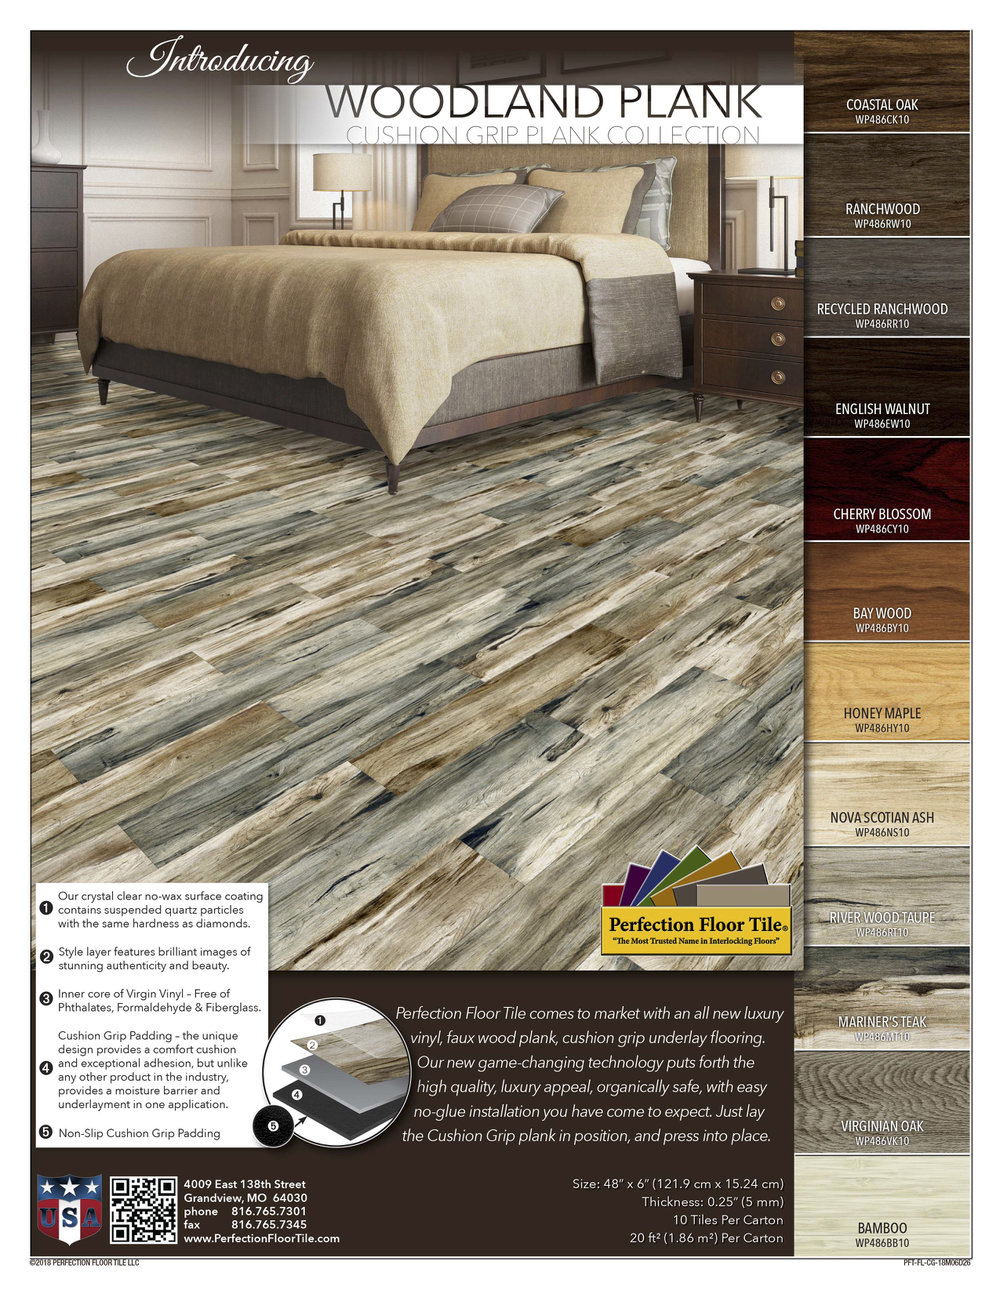 Woodland Plank Perfection Floor Tile